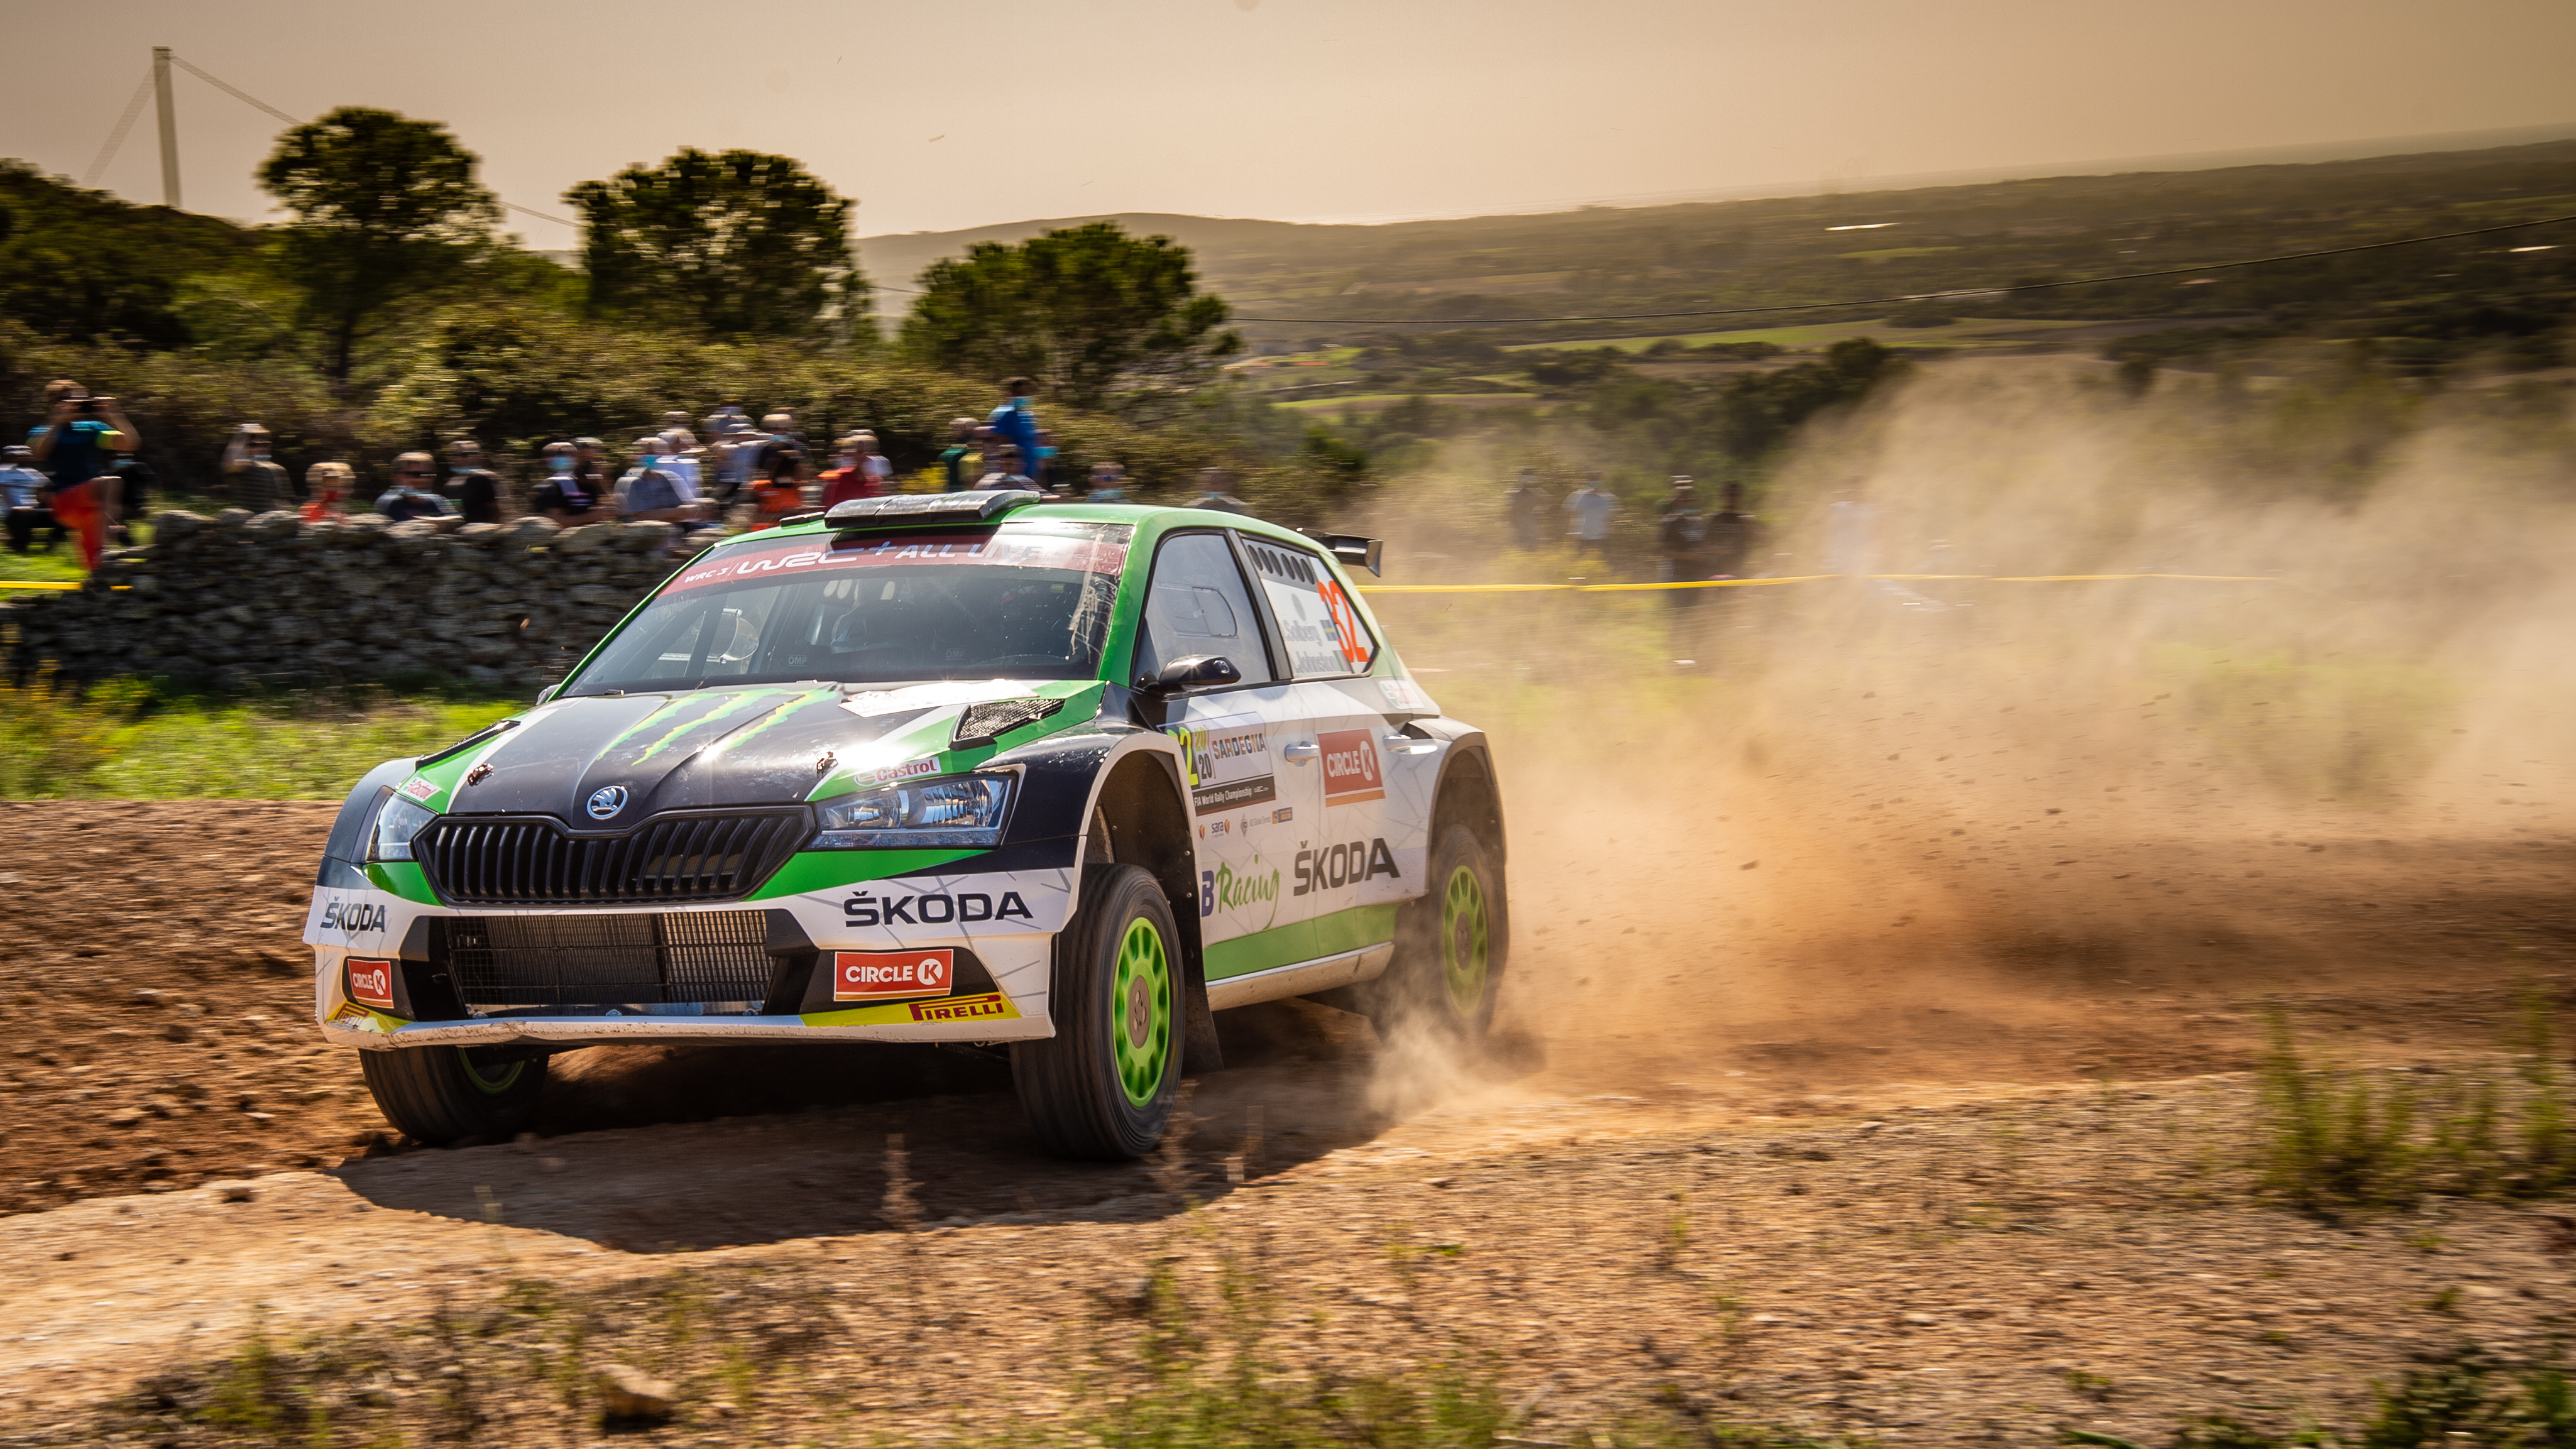 Rally Italia Sardegna: Two SKODA crews on top of WRC2 and WRC3 after tough first leg - Image 4